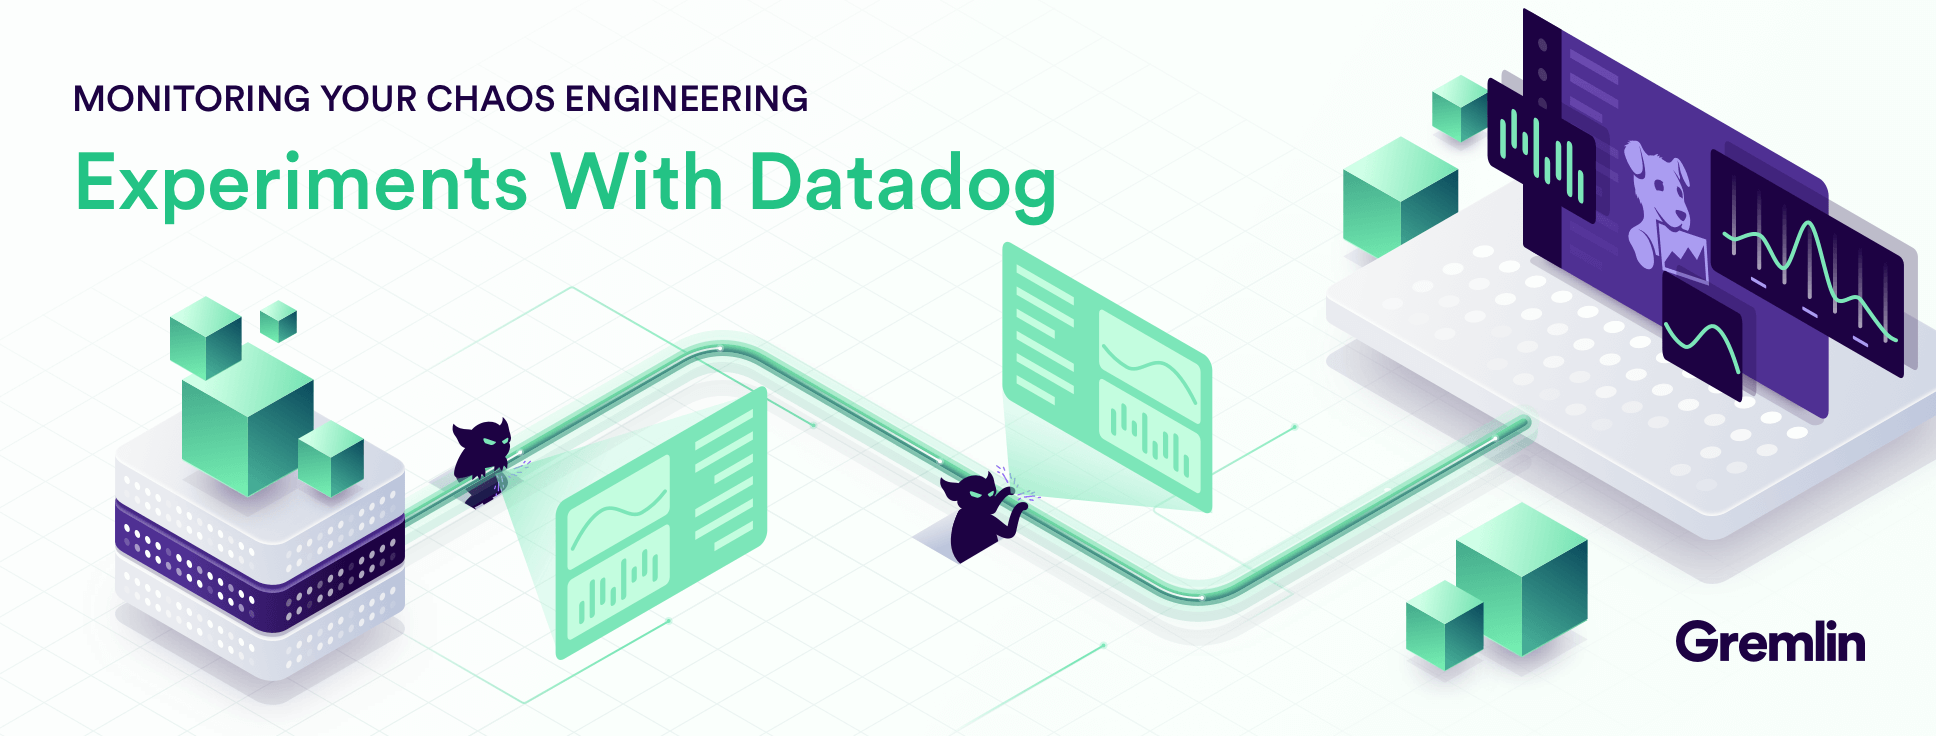 Monitoring Your Chaos Engineering Experiments With Datadog